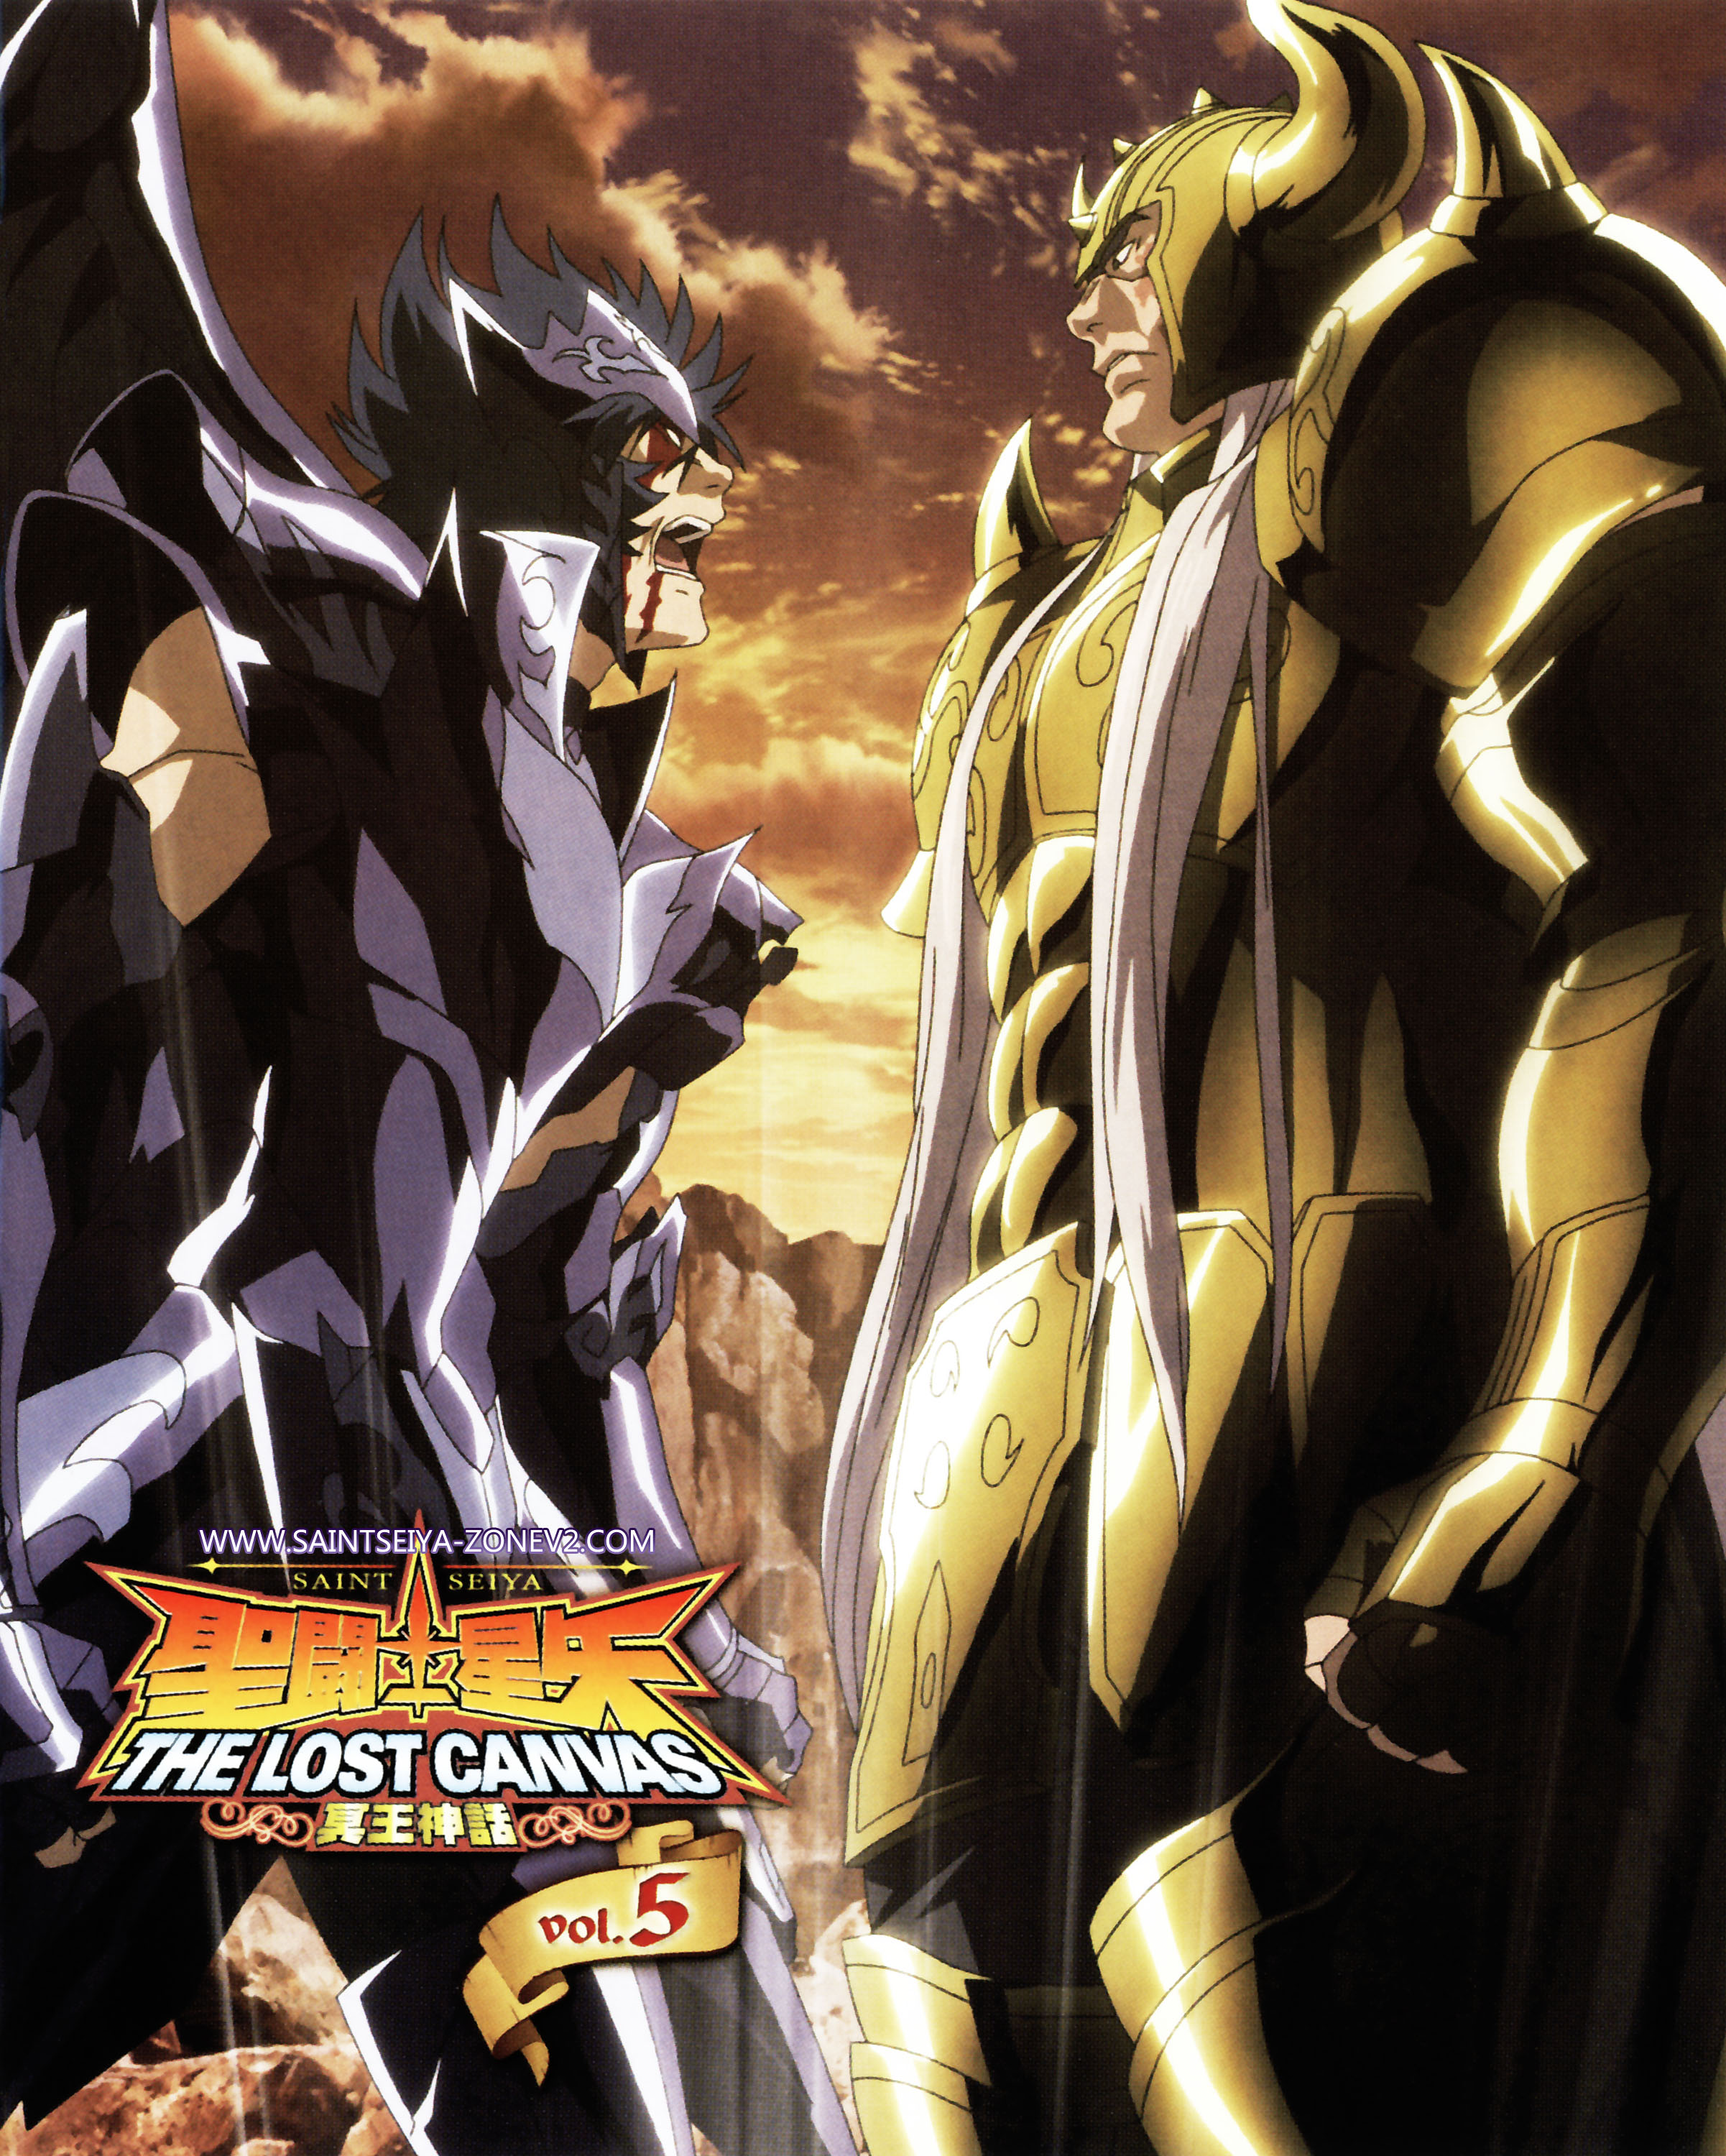 Saint.Seiya.Lost.Canvas.full.933040.jpg